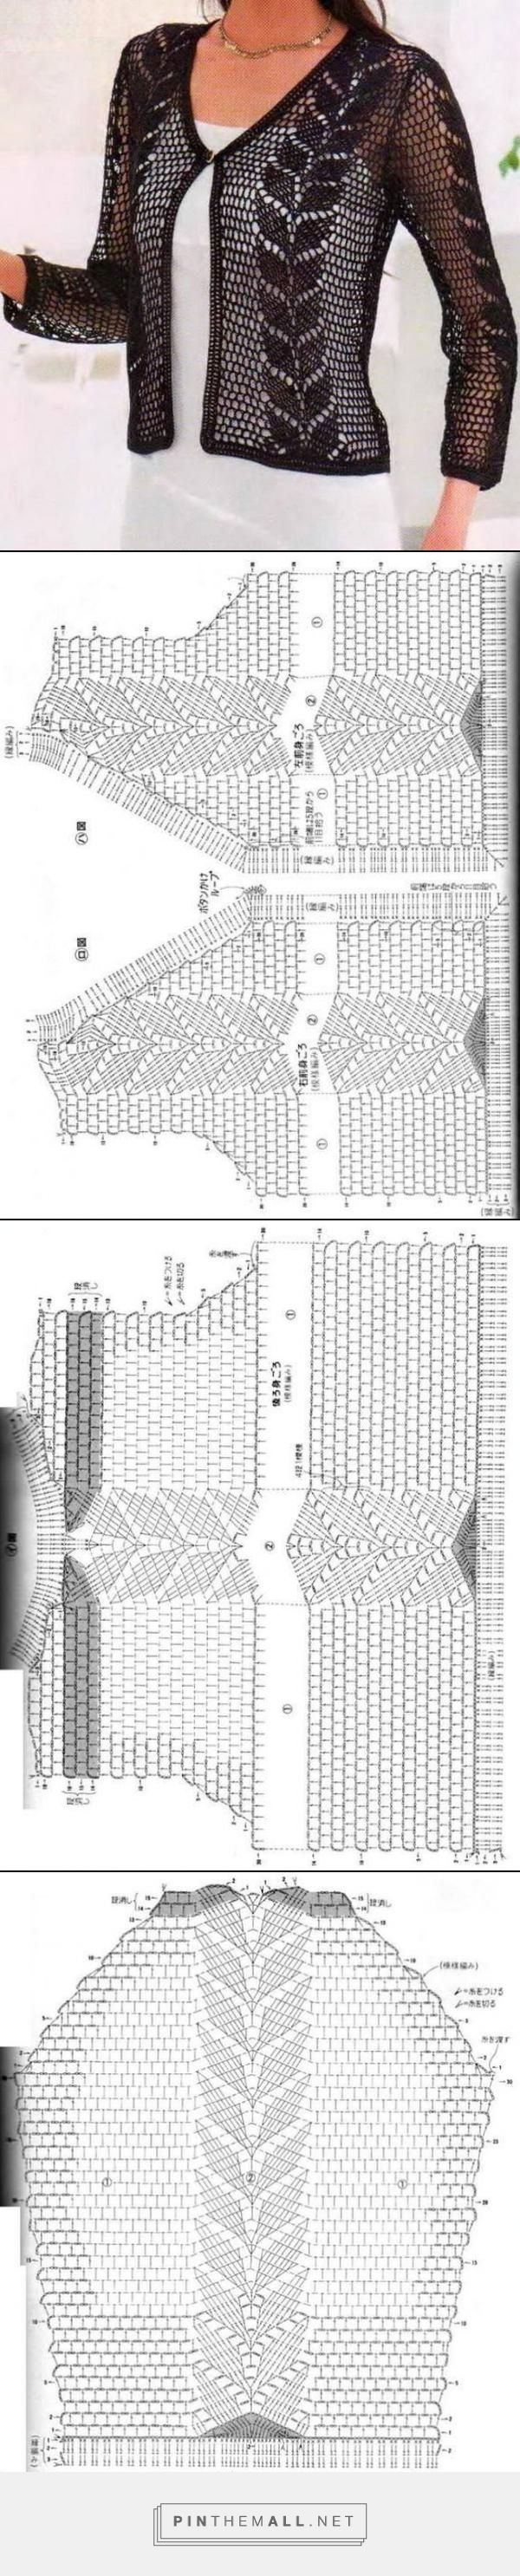 ... - a grouped images picture - Pin Them All